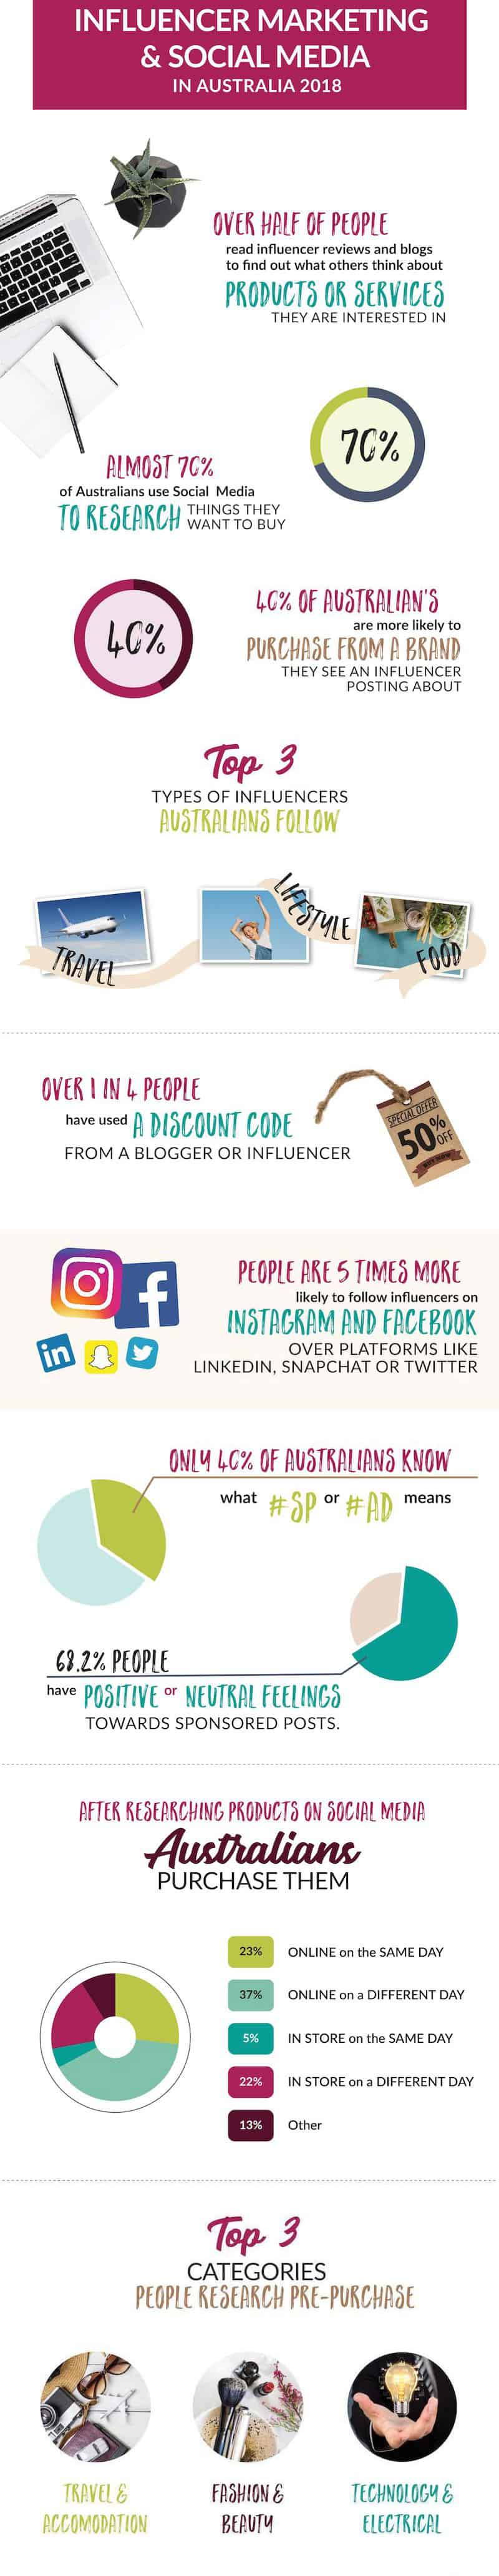 Statistics Influencer Marketing Australia Infographic